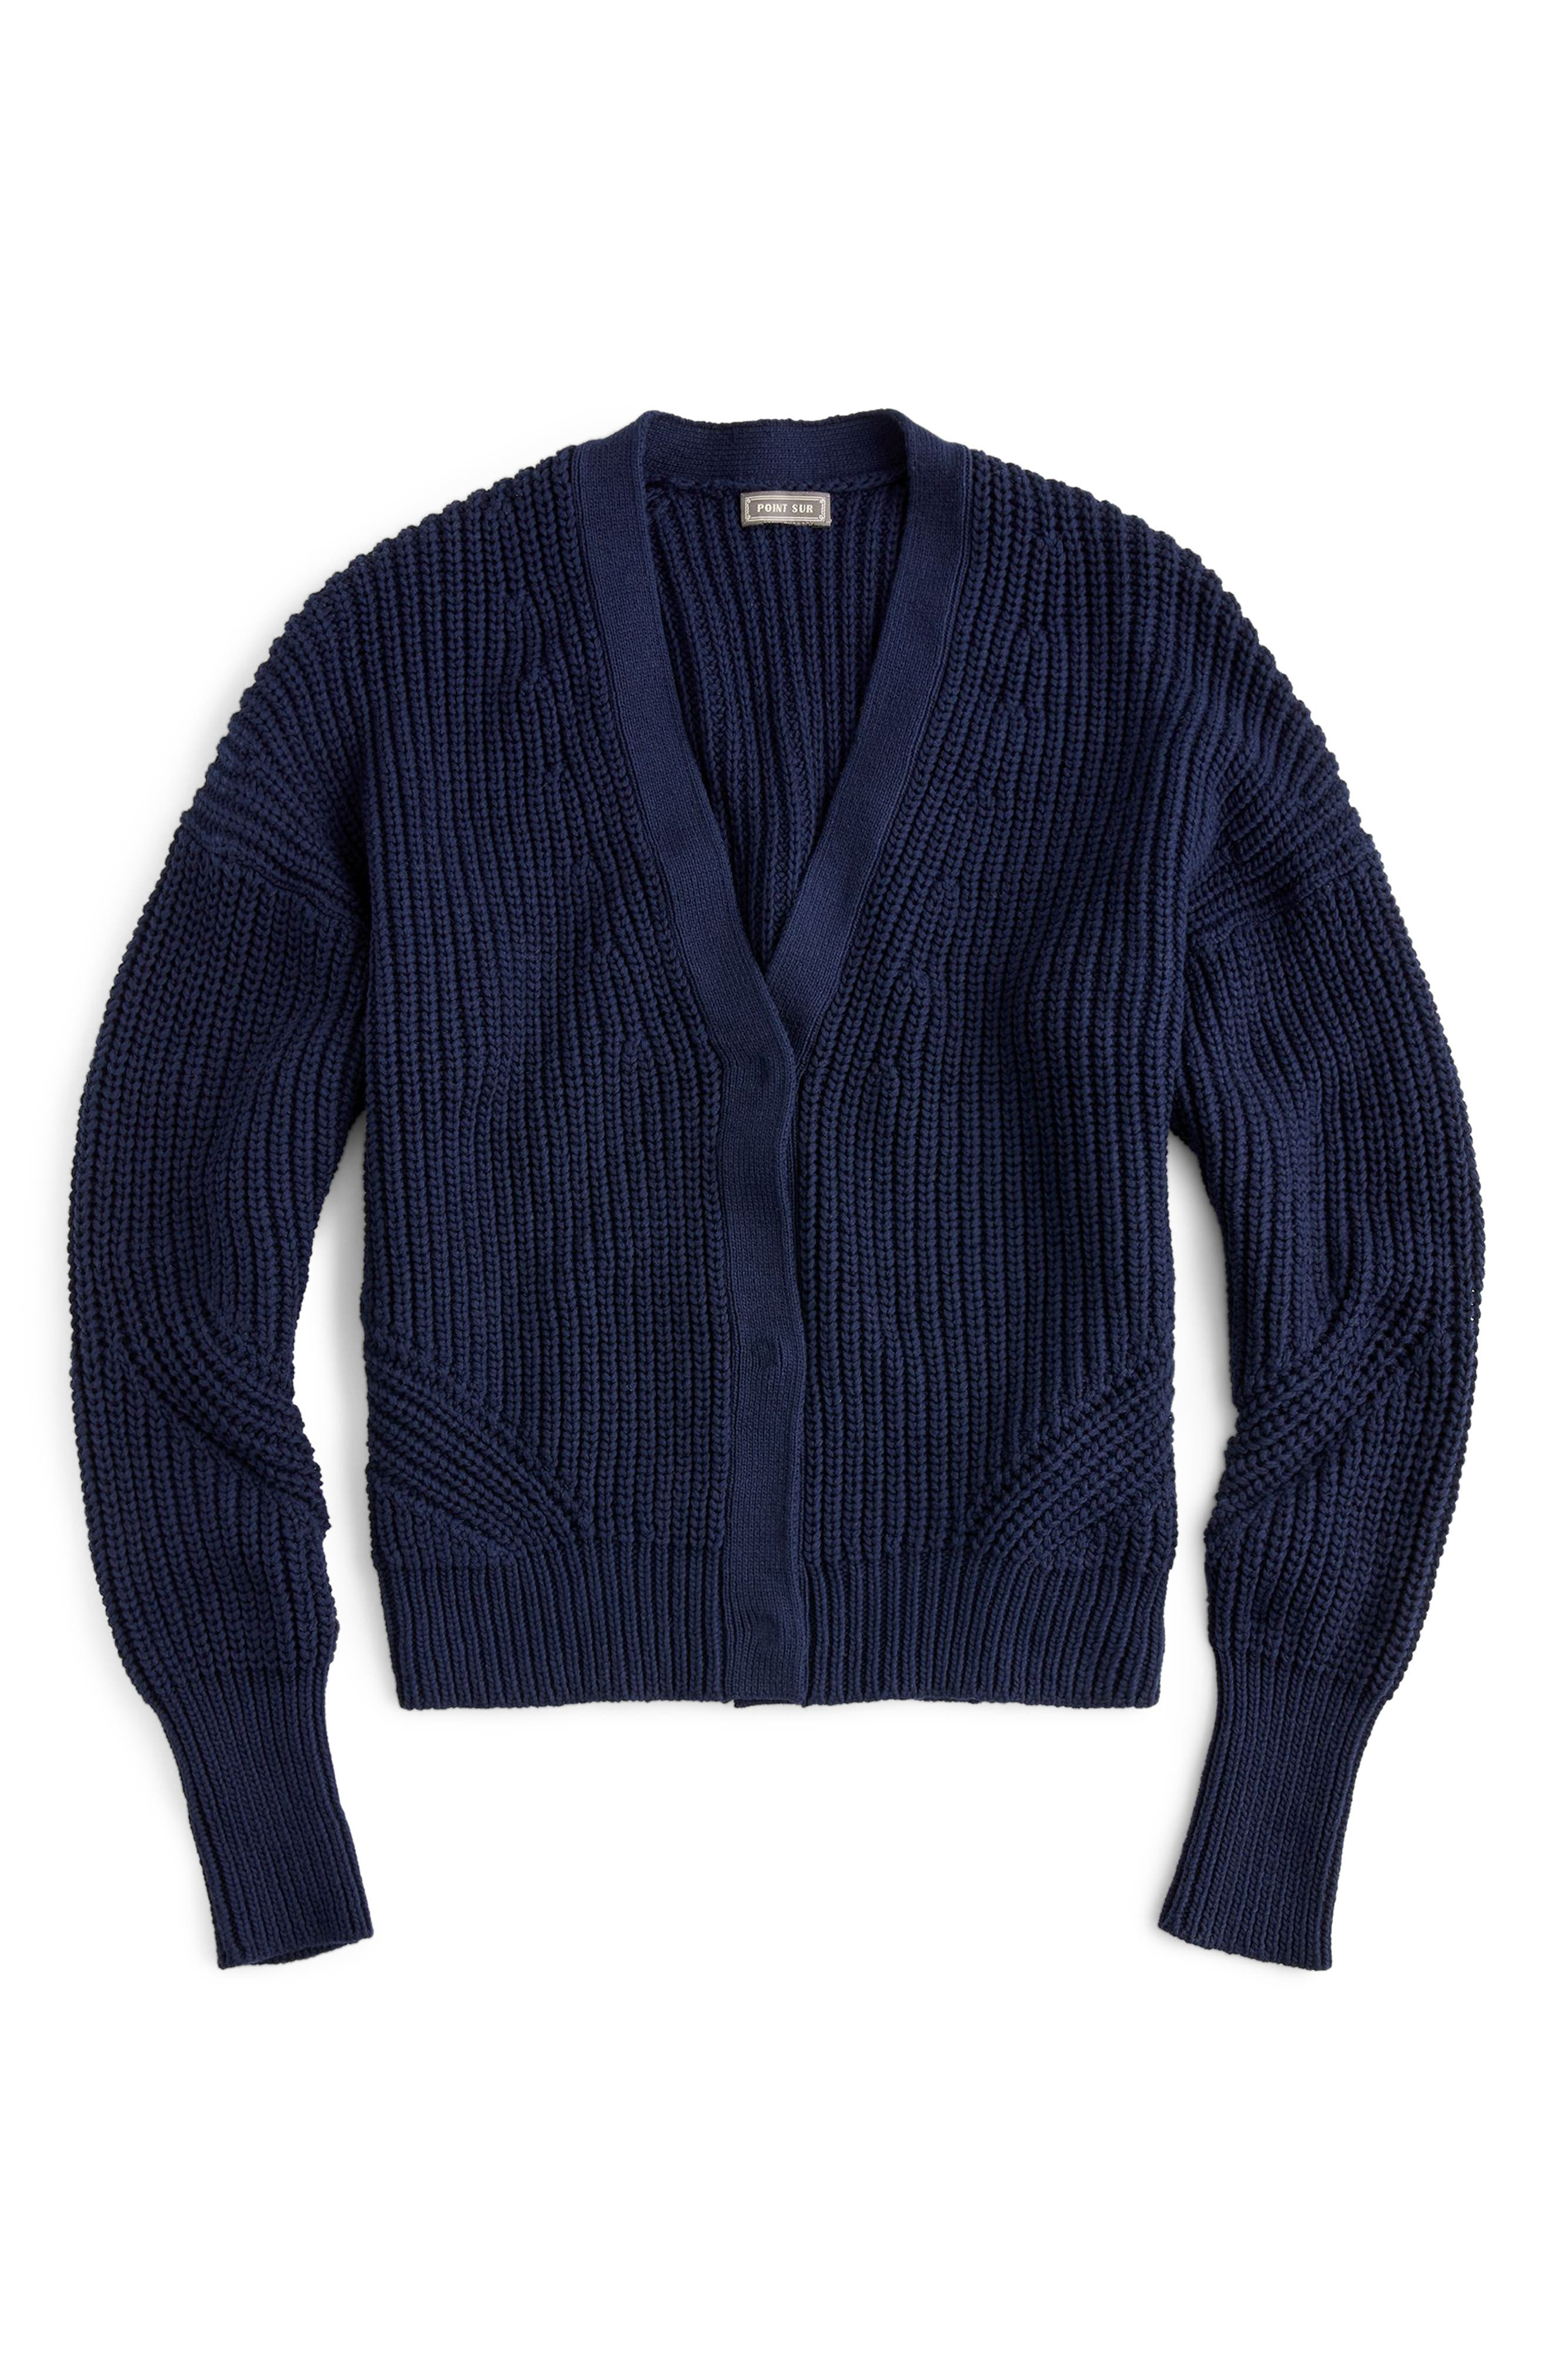 Point Sur Ribbed Cardigan,                             Main thumbnail 1, color,                             400